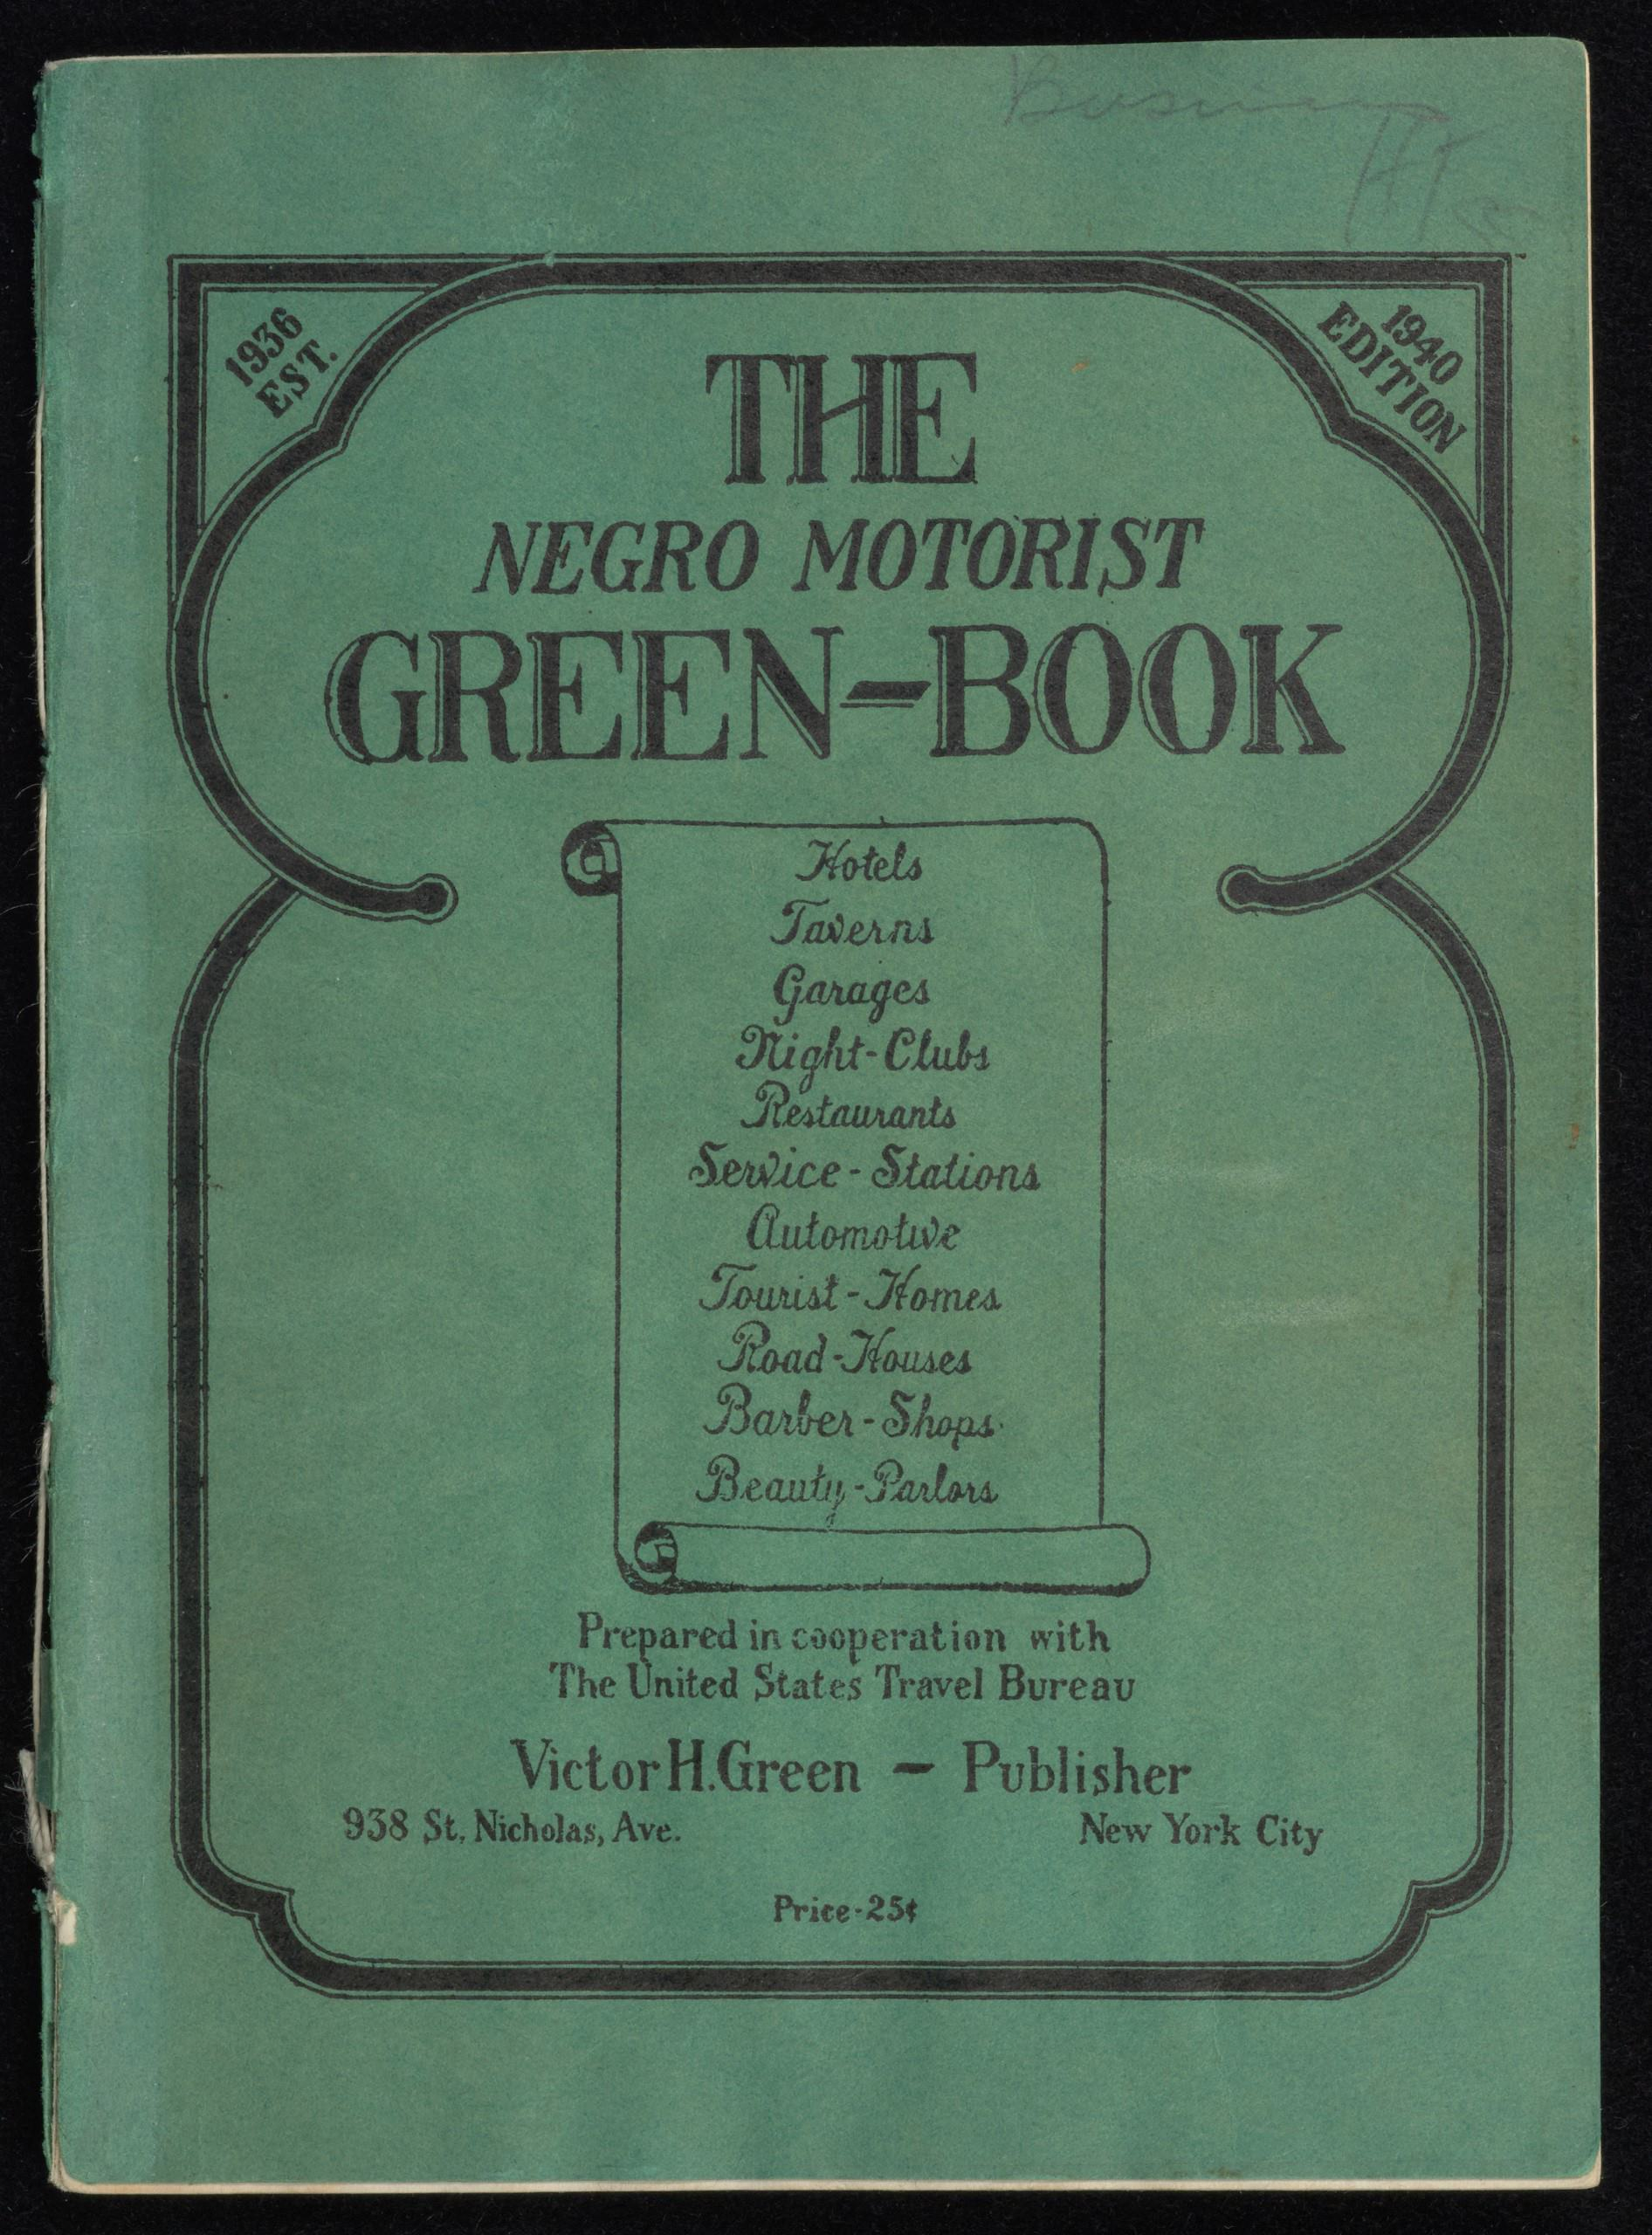 GreenbookCover